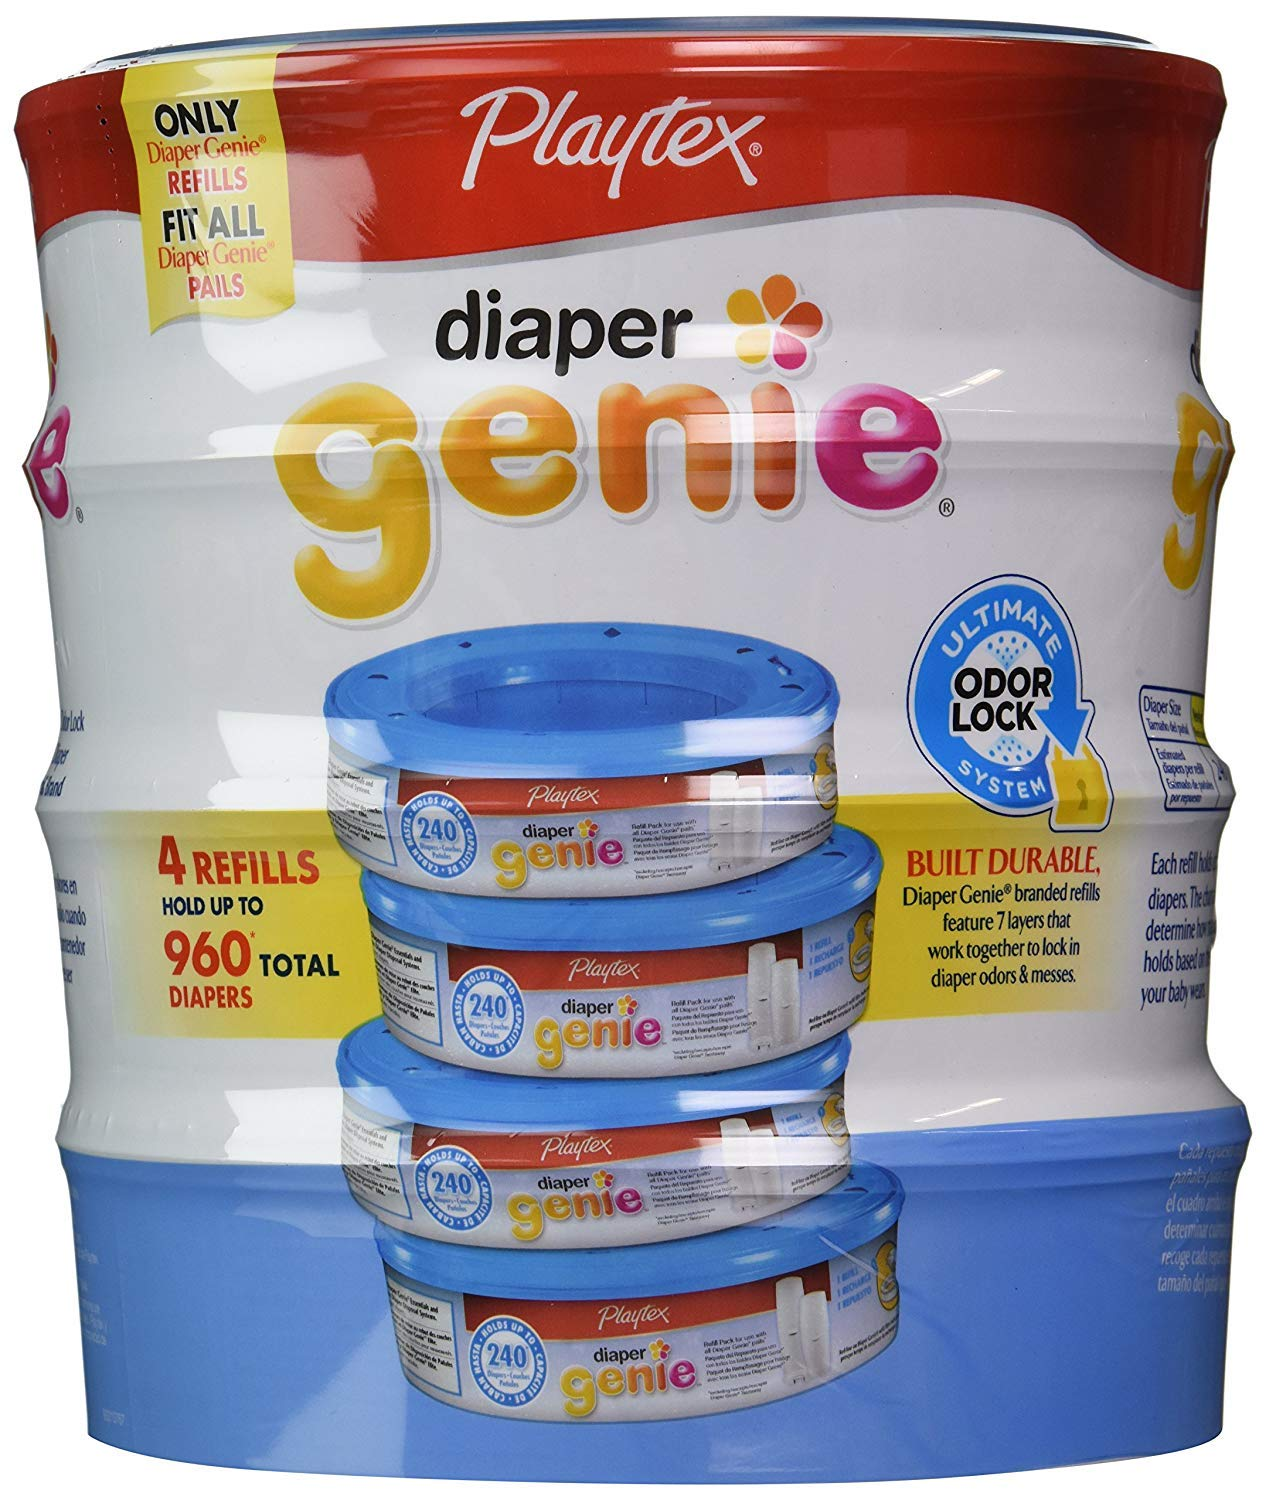 baby bath care - Wholesale Price Branded Playtex Diaper Genie Refills Bulk Qty at Whoesale Price, Genuine /& Soft Baby diaper 4 pk.